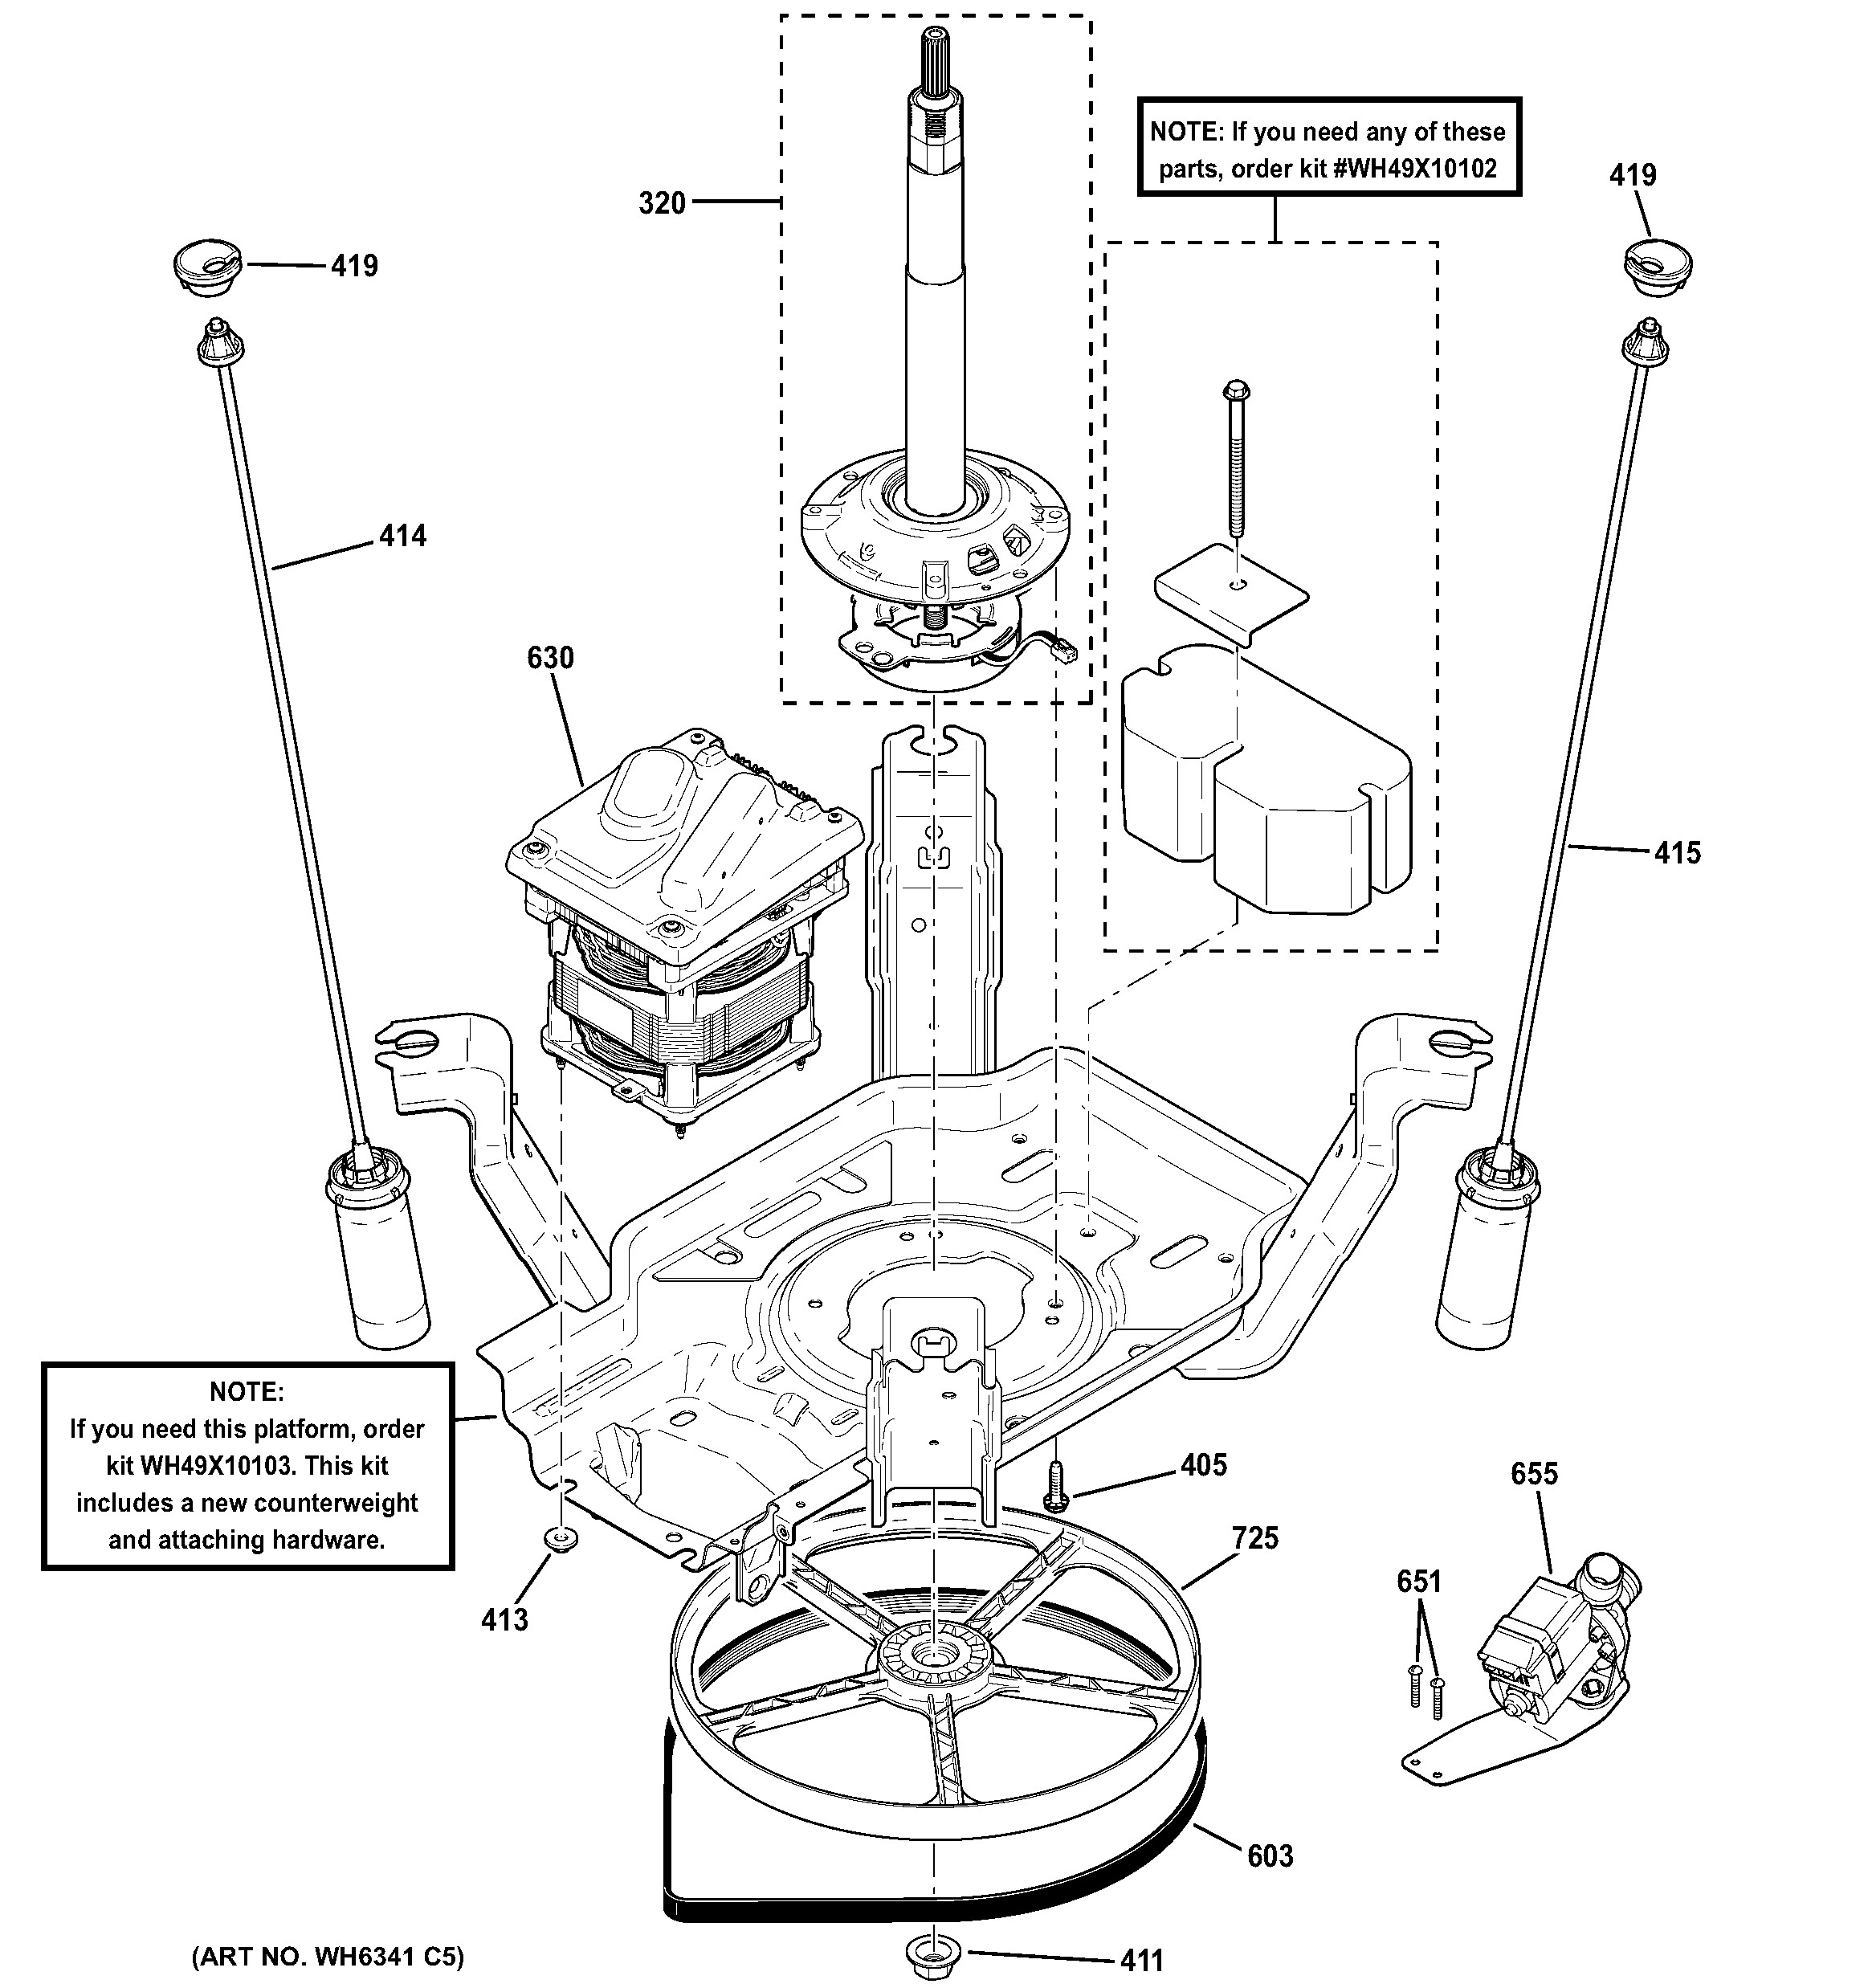 Diagram Of Front Suspension Ge Model Gtwn4250m1ws Residential Washers Genuine Parts